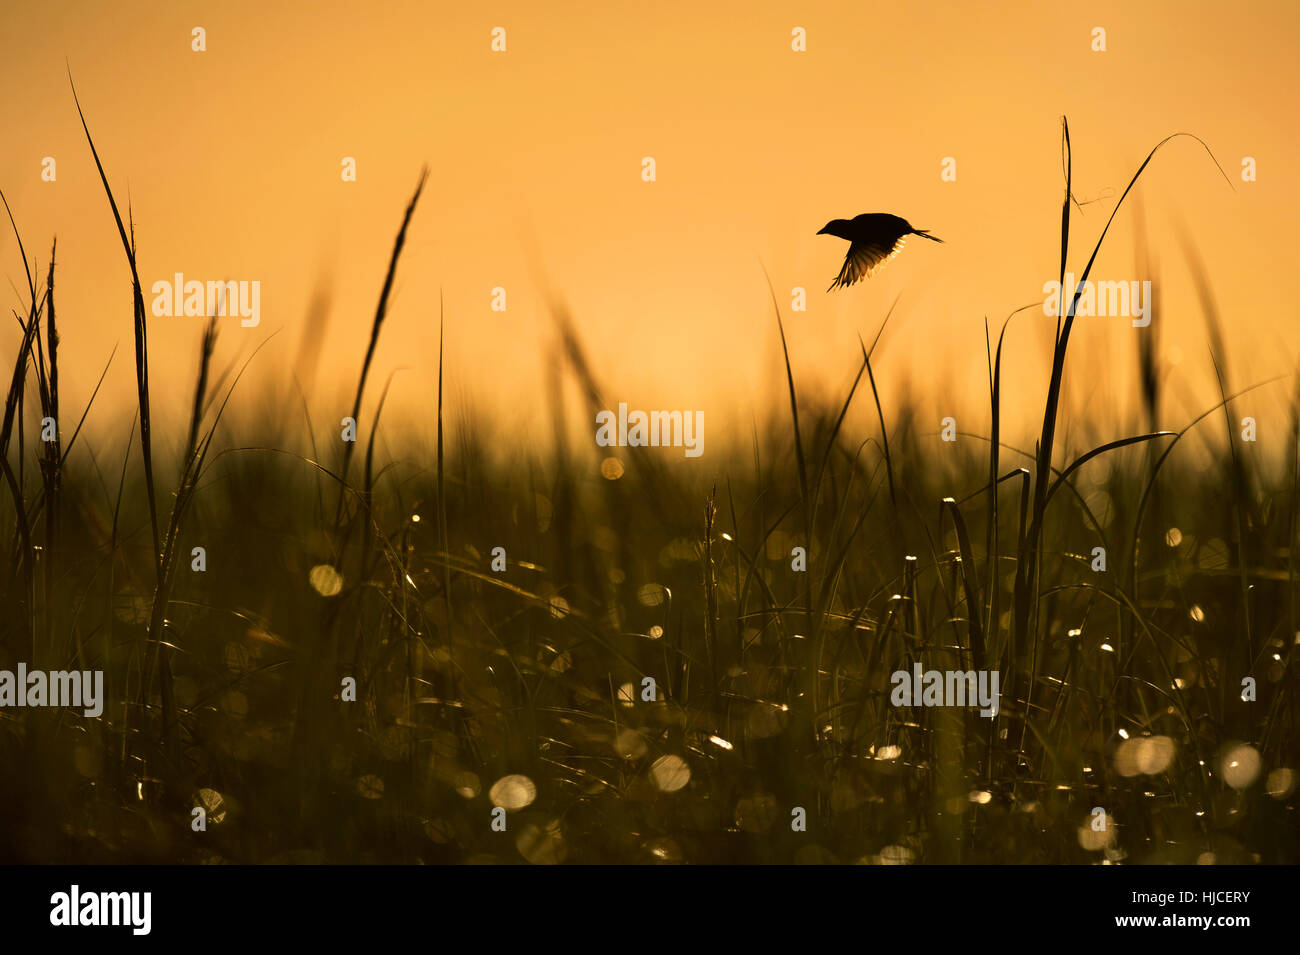 A Seaside Sparrow takes flight early one morning in a field of tall marsh grass with an orange sky background. - Stock Image